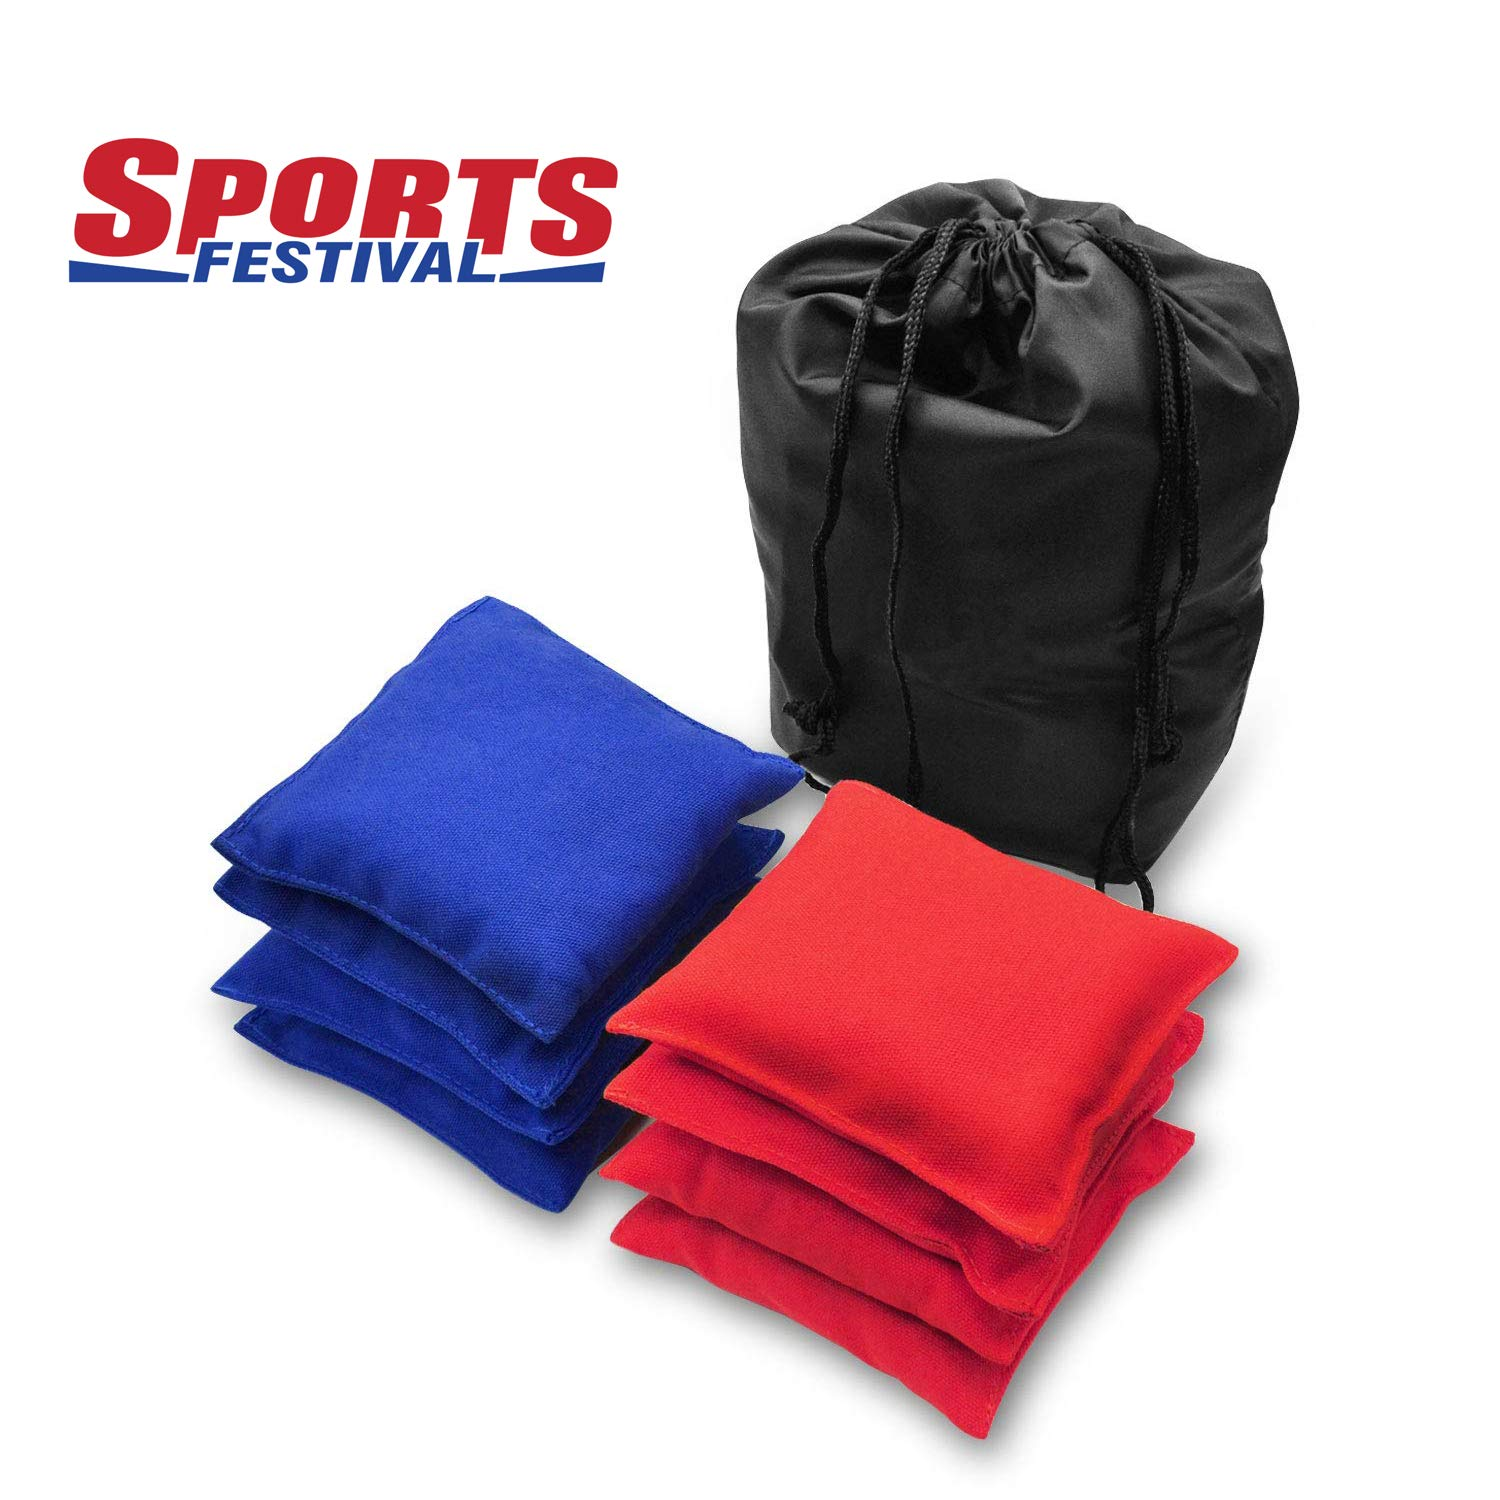 LOKATSE HOME Premium Weatherproof Replacement Bean Bags for Cornhole Toss - 8 Bags Included ( Red & Blue ) by LOKATSE HOME